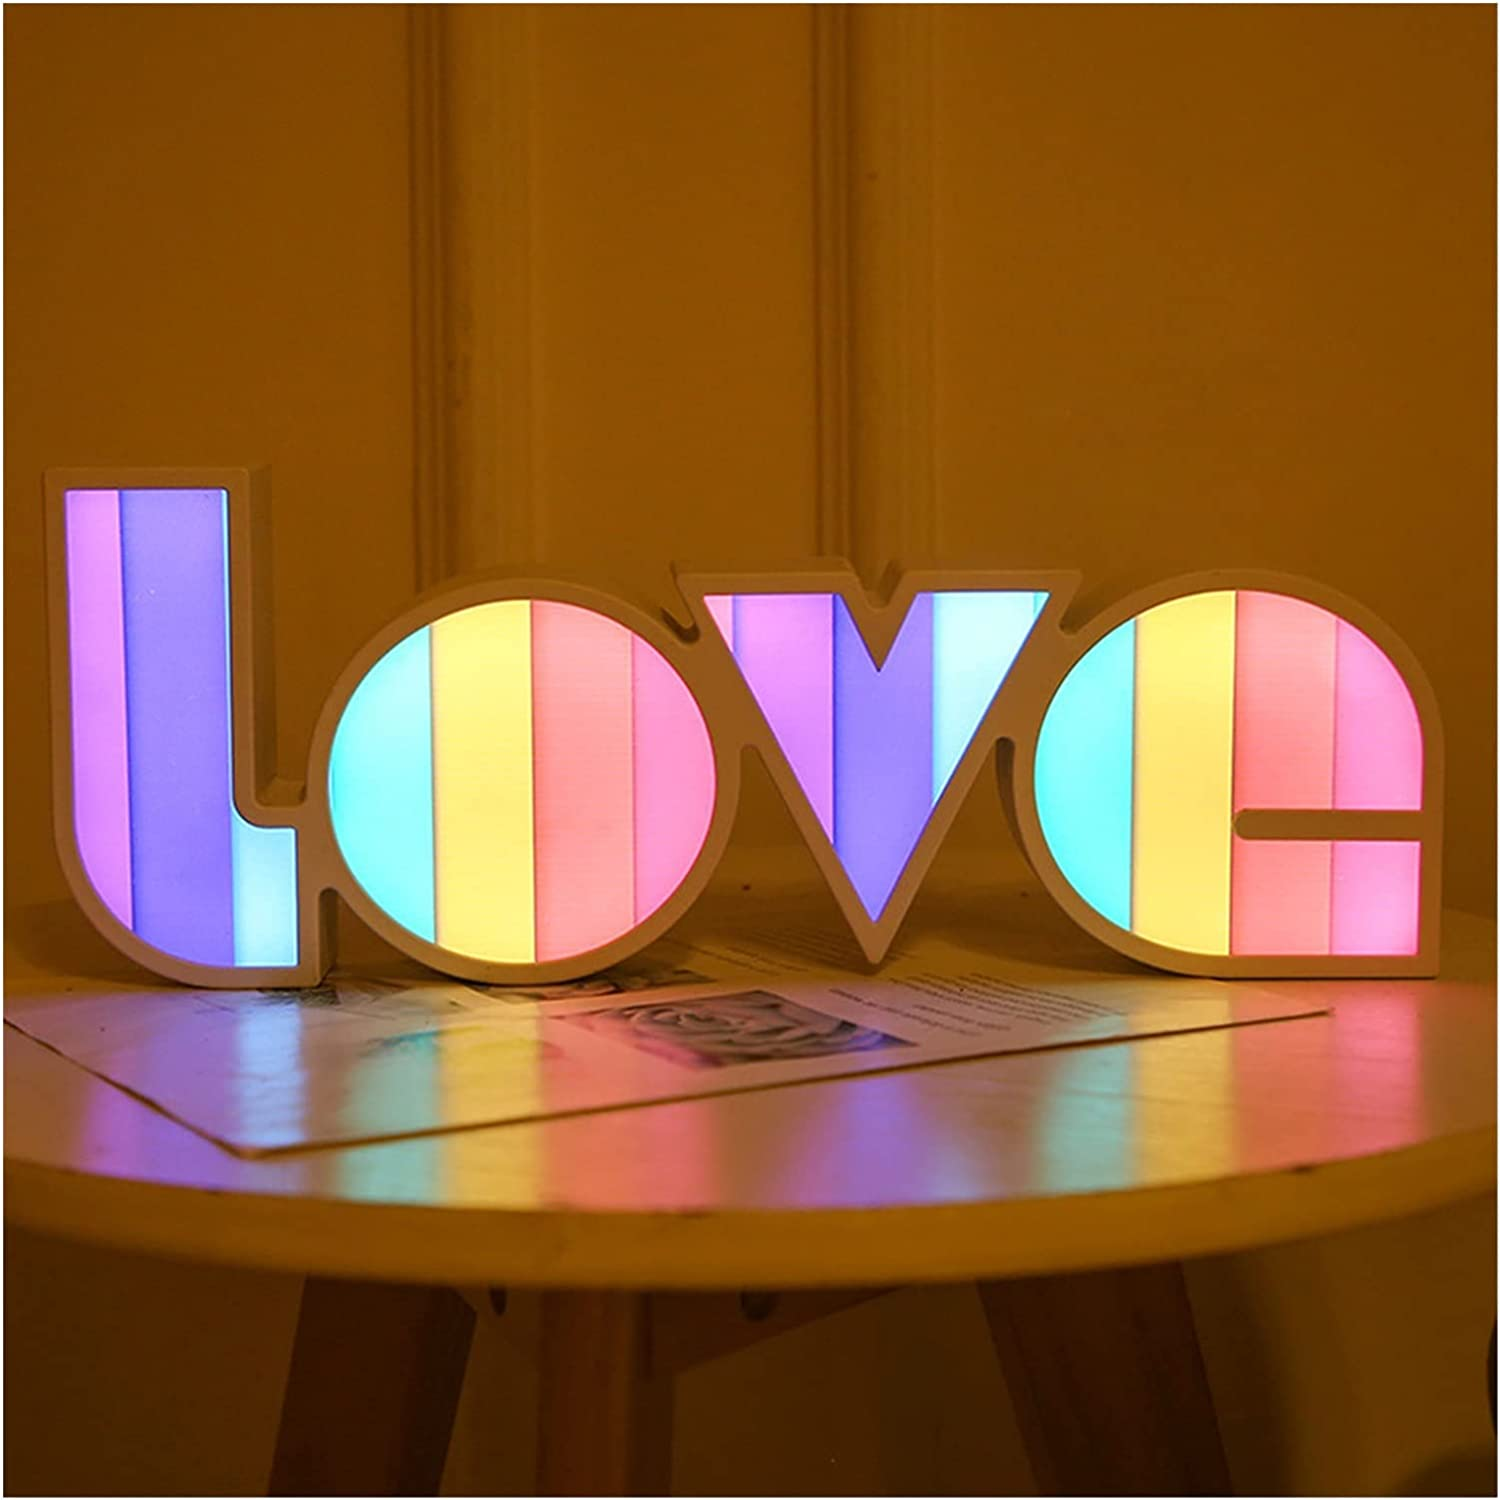 Max 72% OFF Fuxwlgs Night Bargain Light LED Lights Room Neon Lamp Warmth